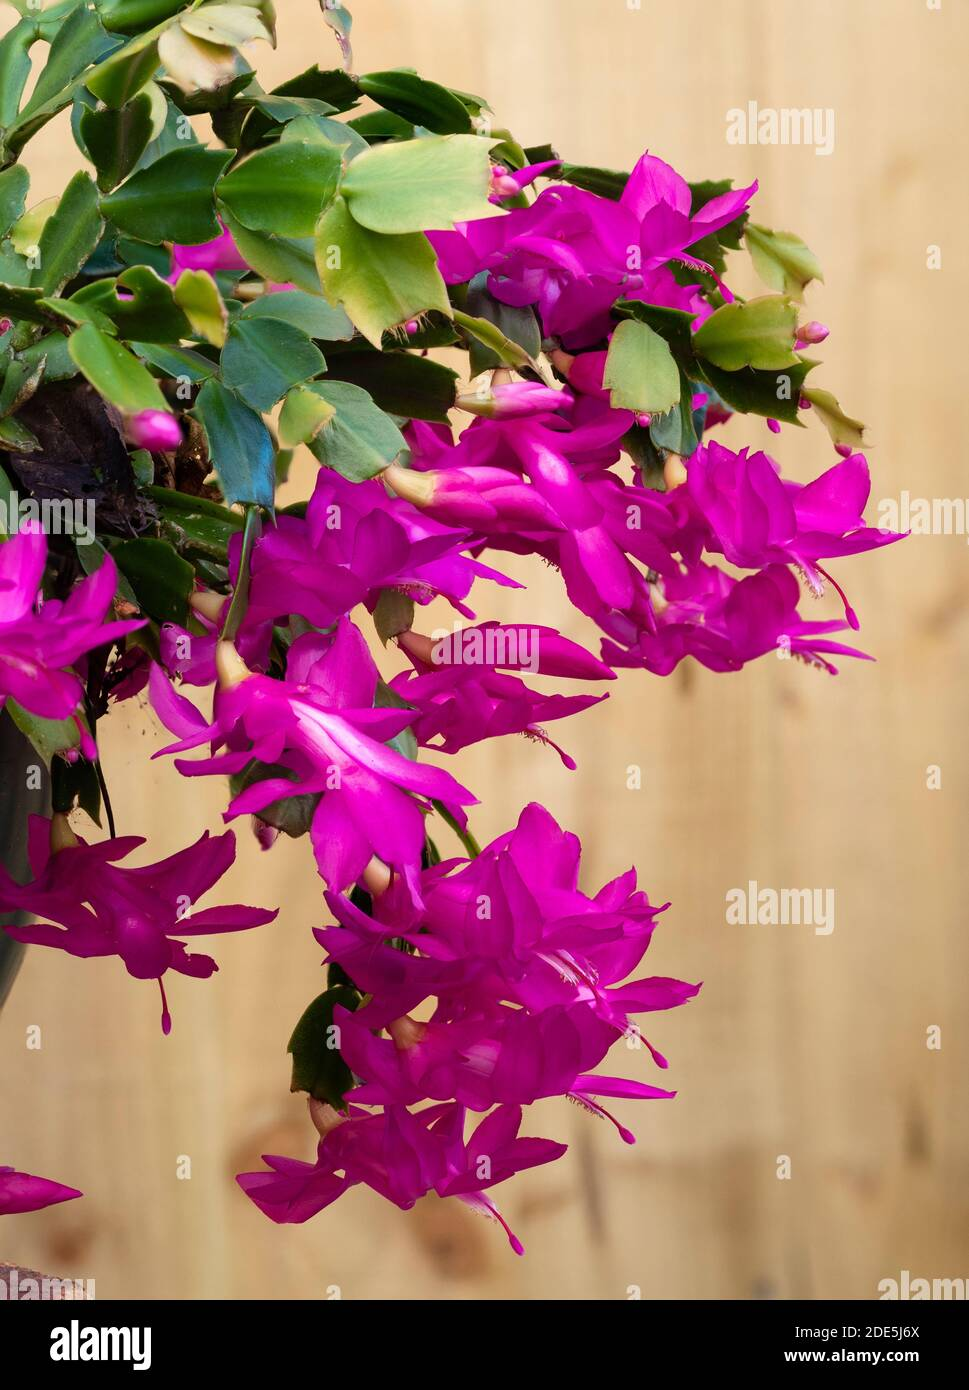 Massed late Autumn display of the pink flowered epiphytic Christmas cactus, Schlumbergera truncata Stock Photo